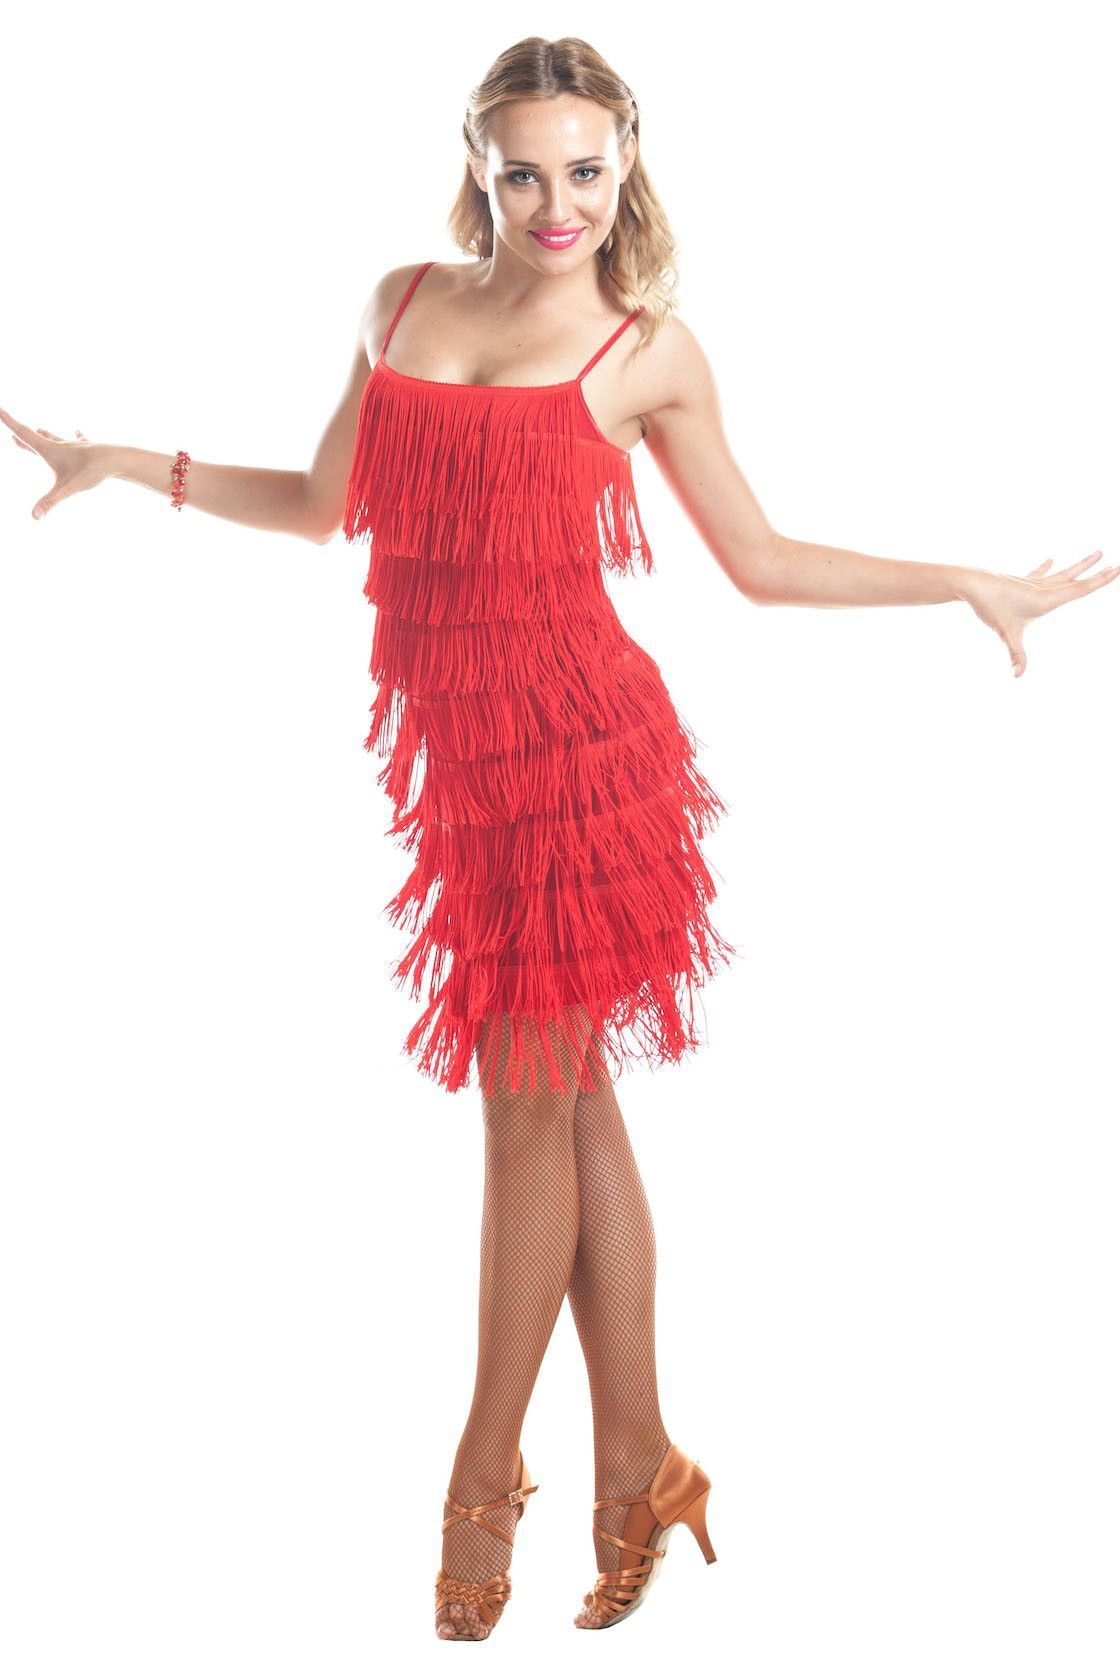 Ibiza Red Fringe Dance Dress Ballroom Dresses Baile Latino